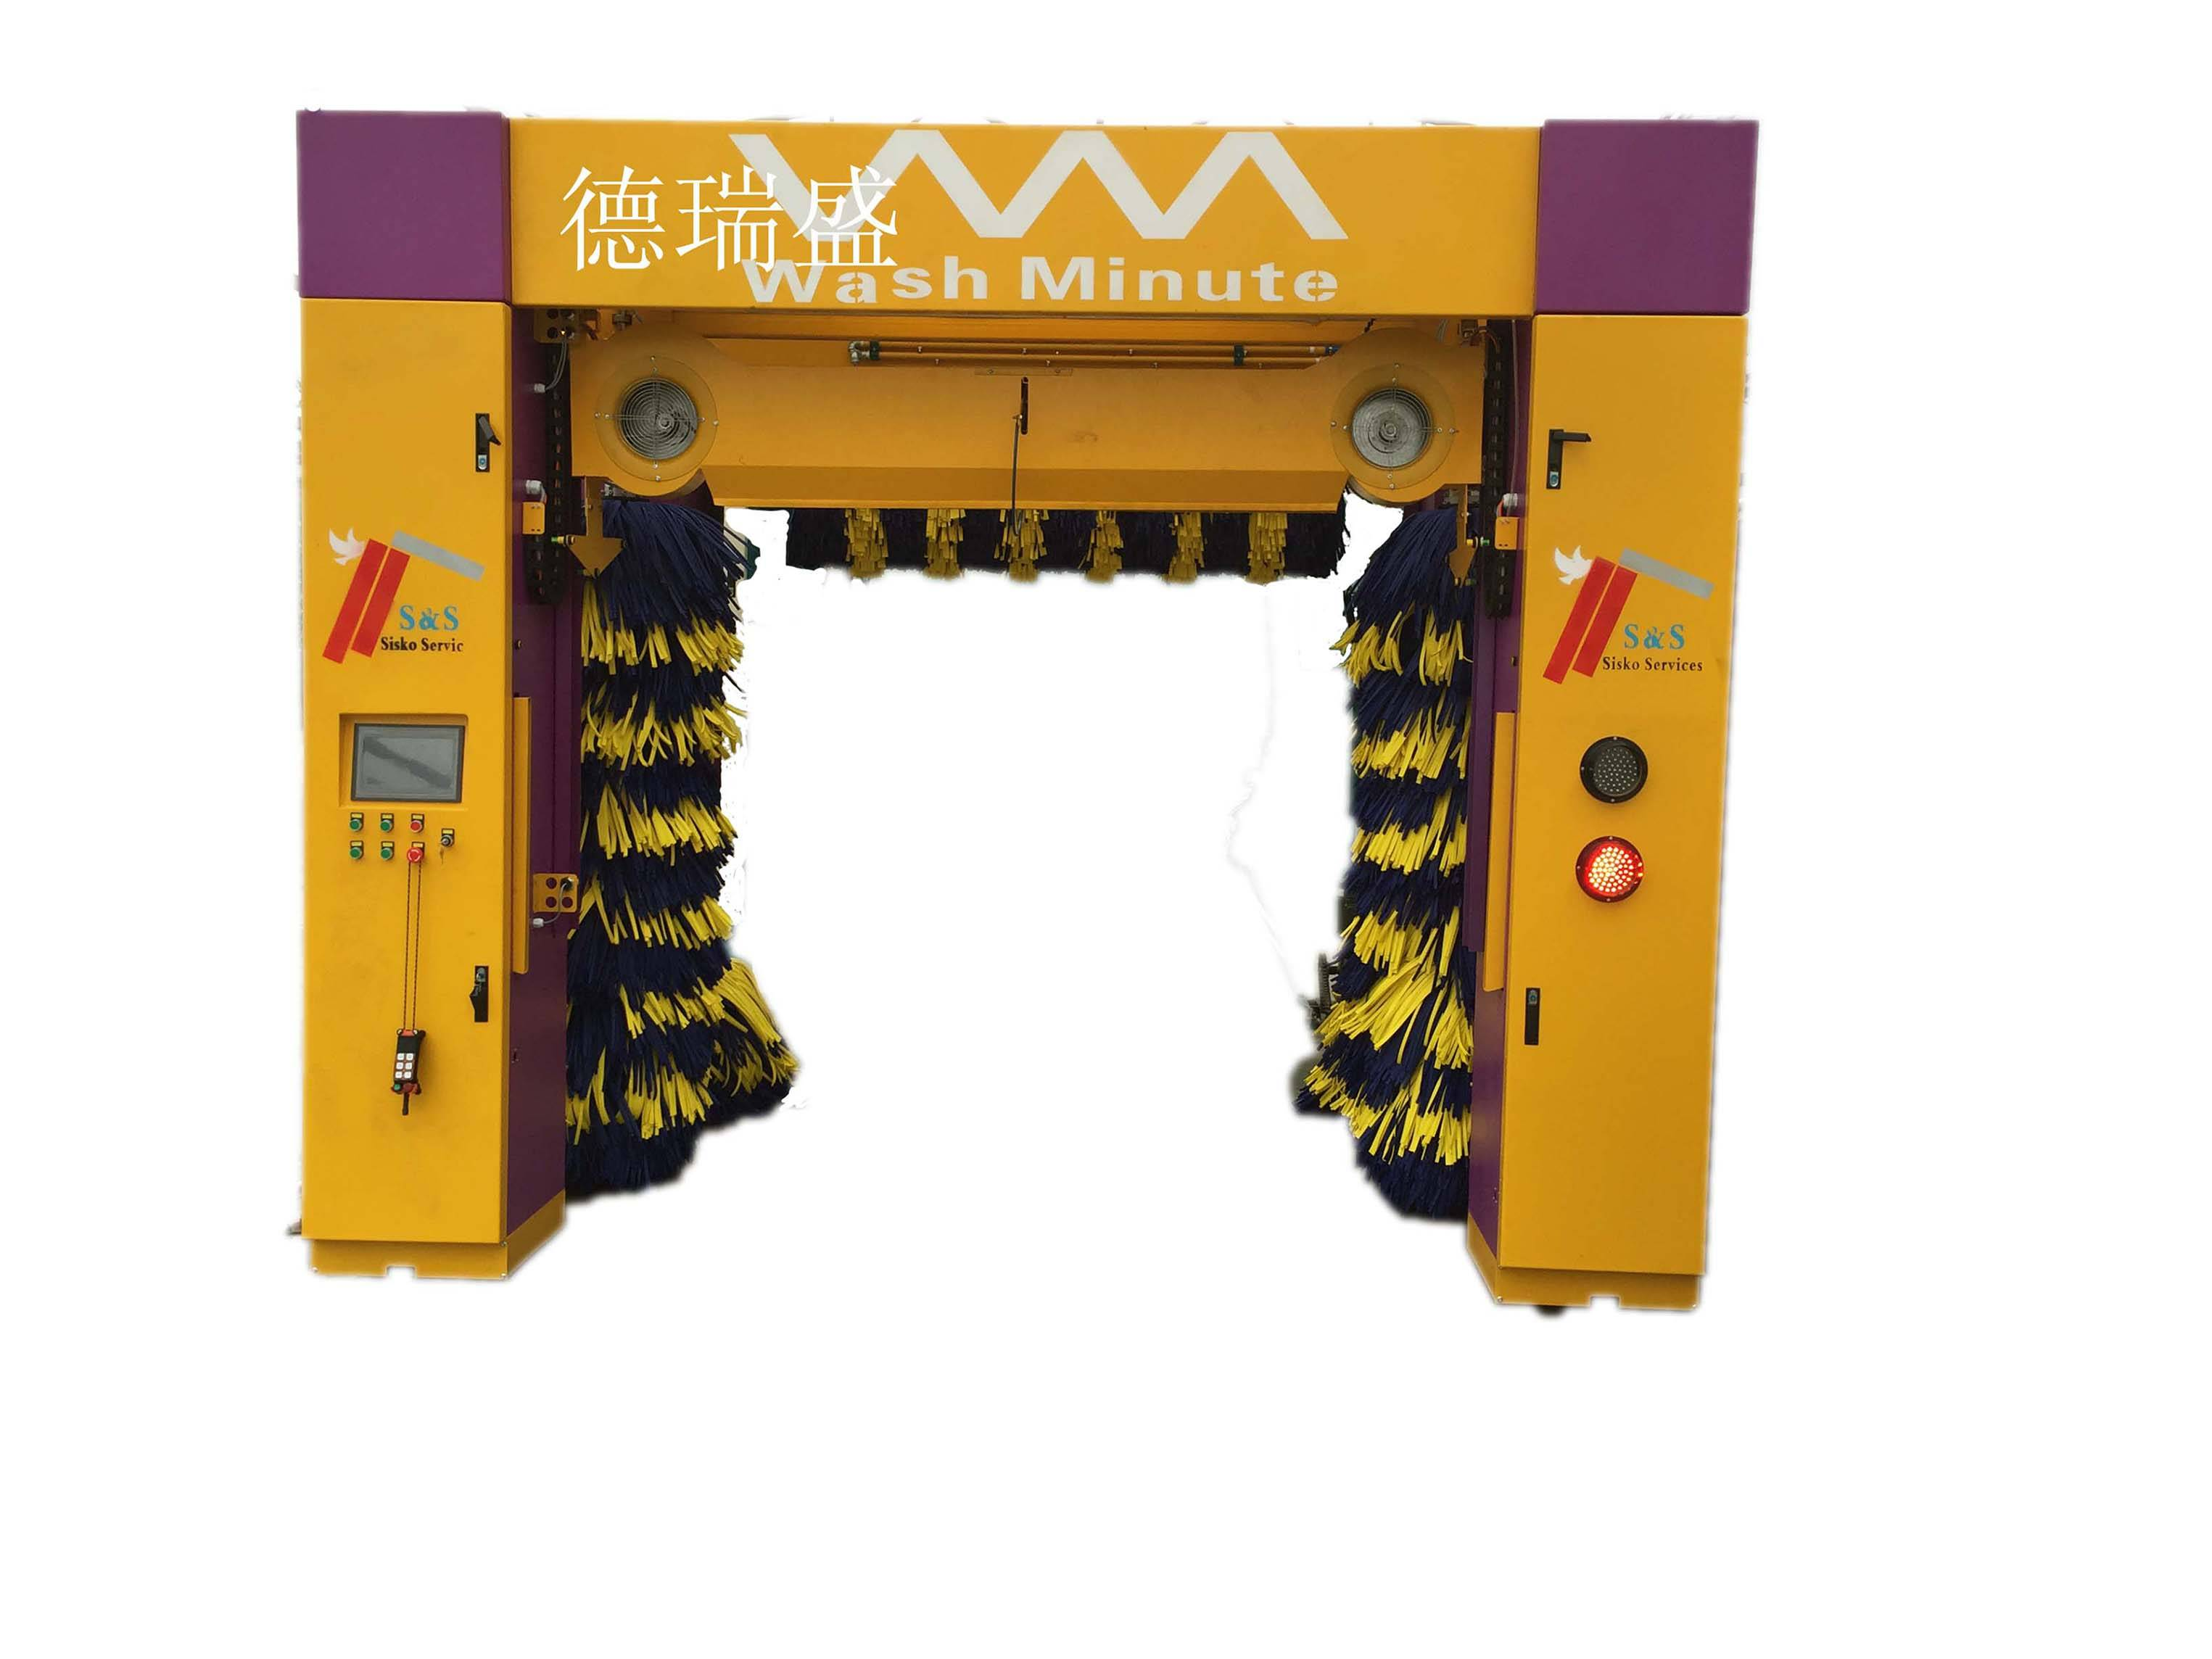 Car wash machine with Fault Self-detect function